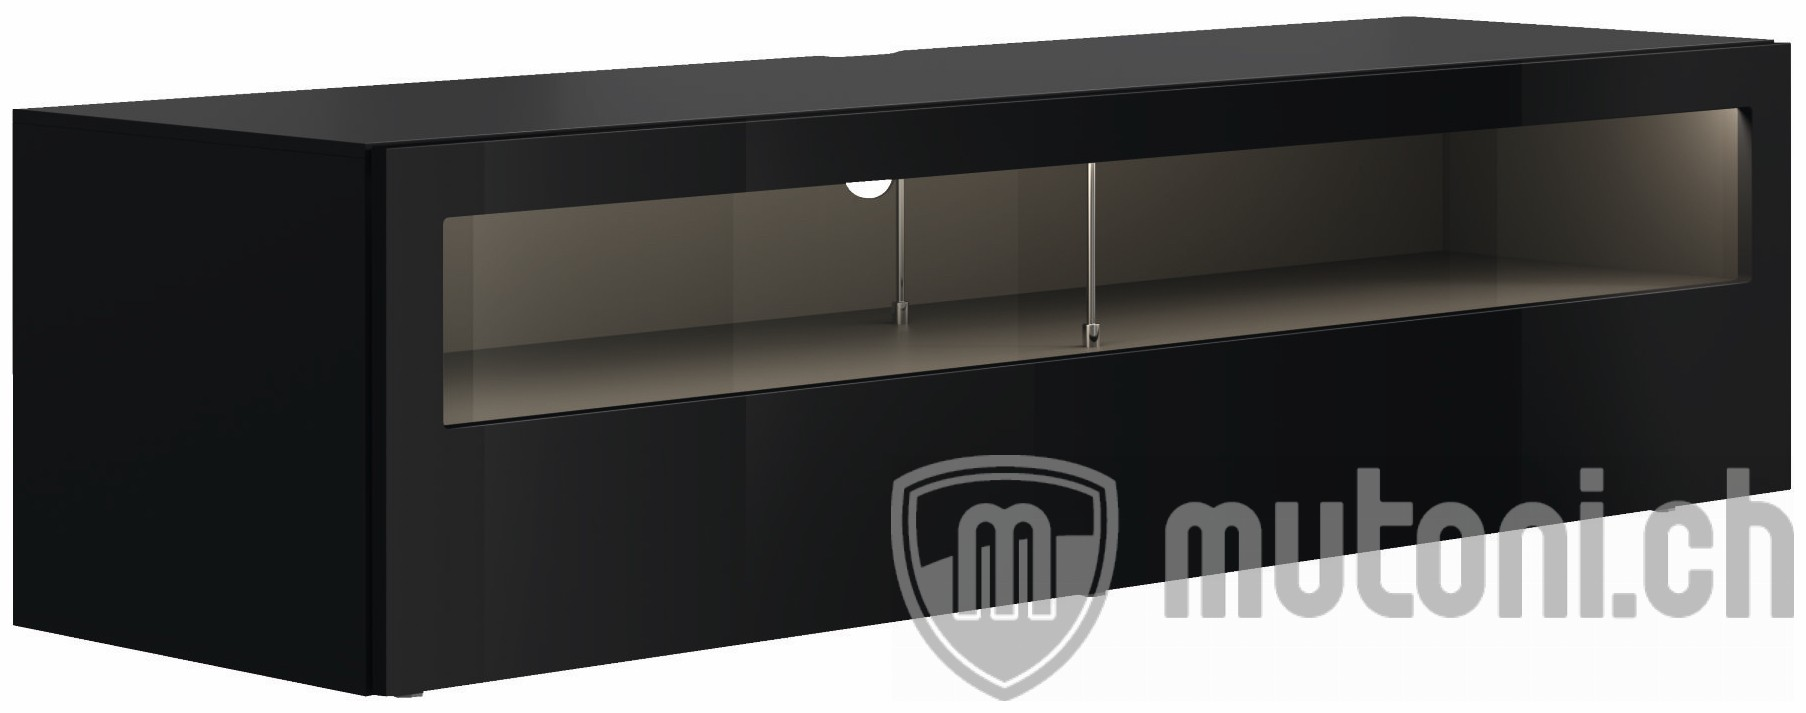 lowboard now vision mit glasausschnitt 211x53cm h lsta mutoni m bel. Black Bedroom Furniture Sets. Home Design Ideas